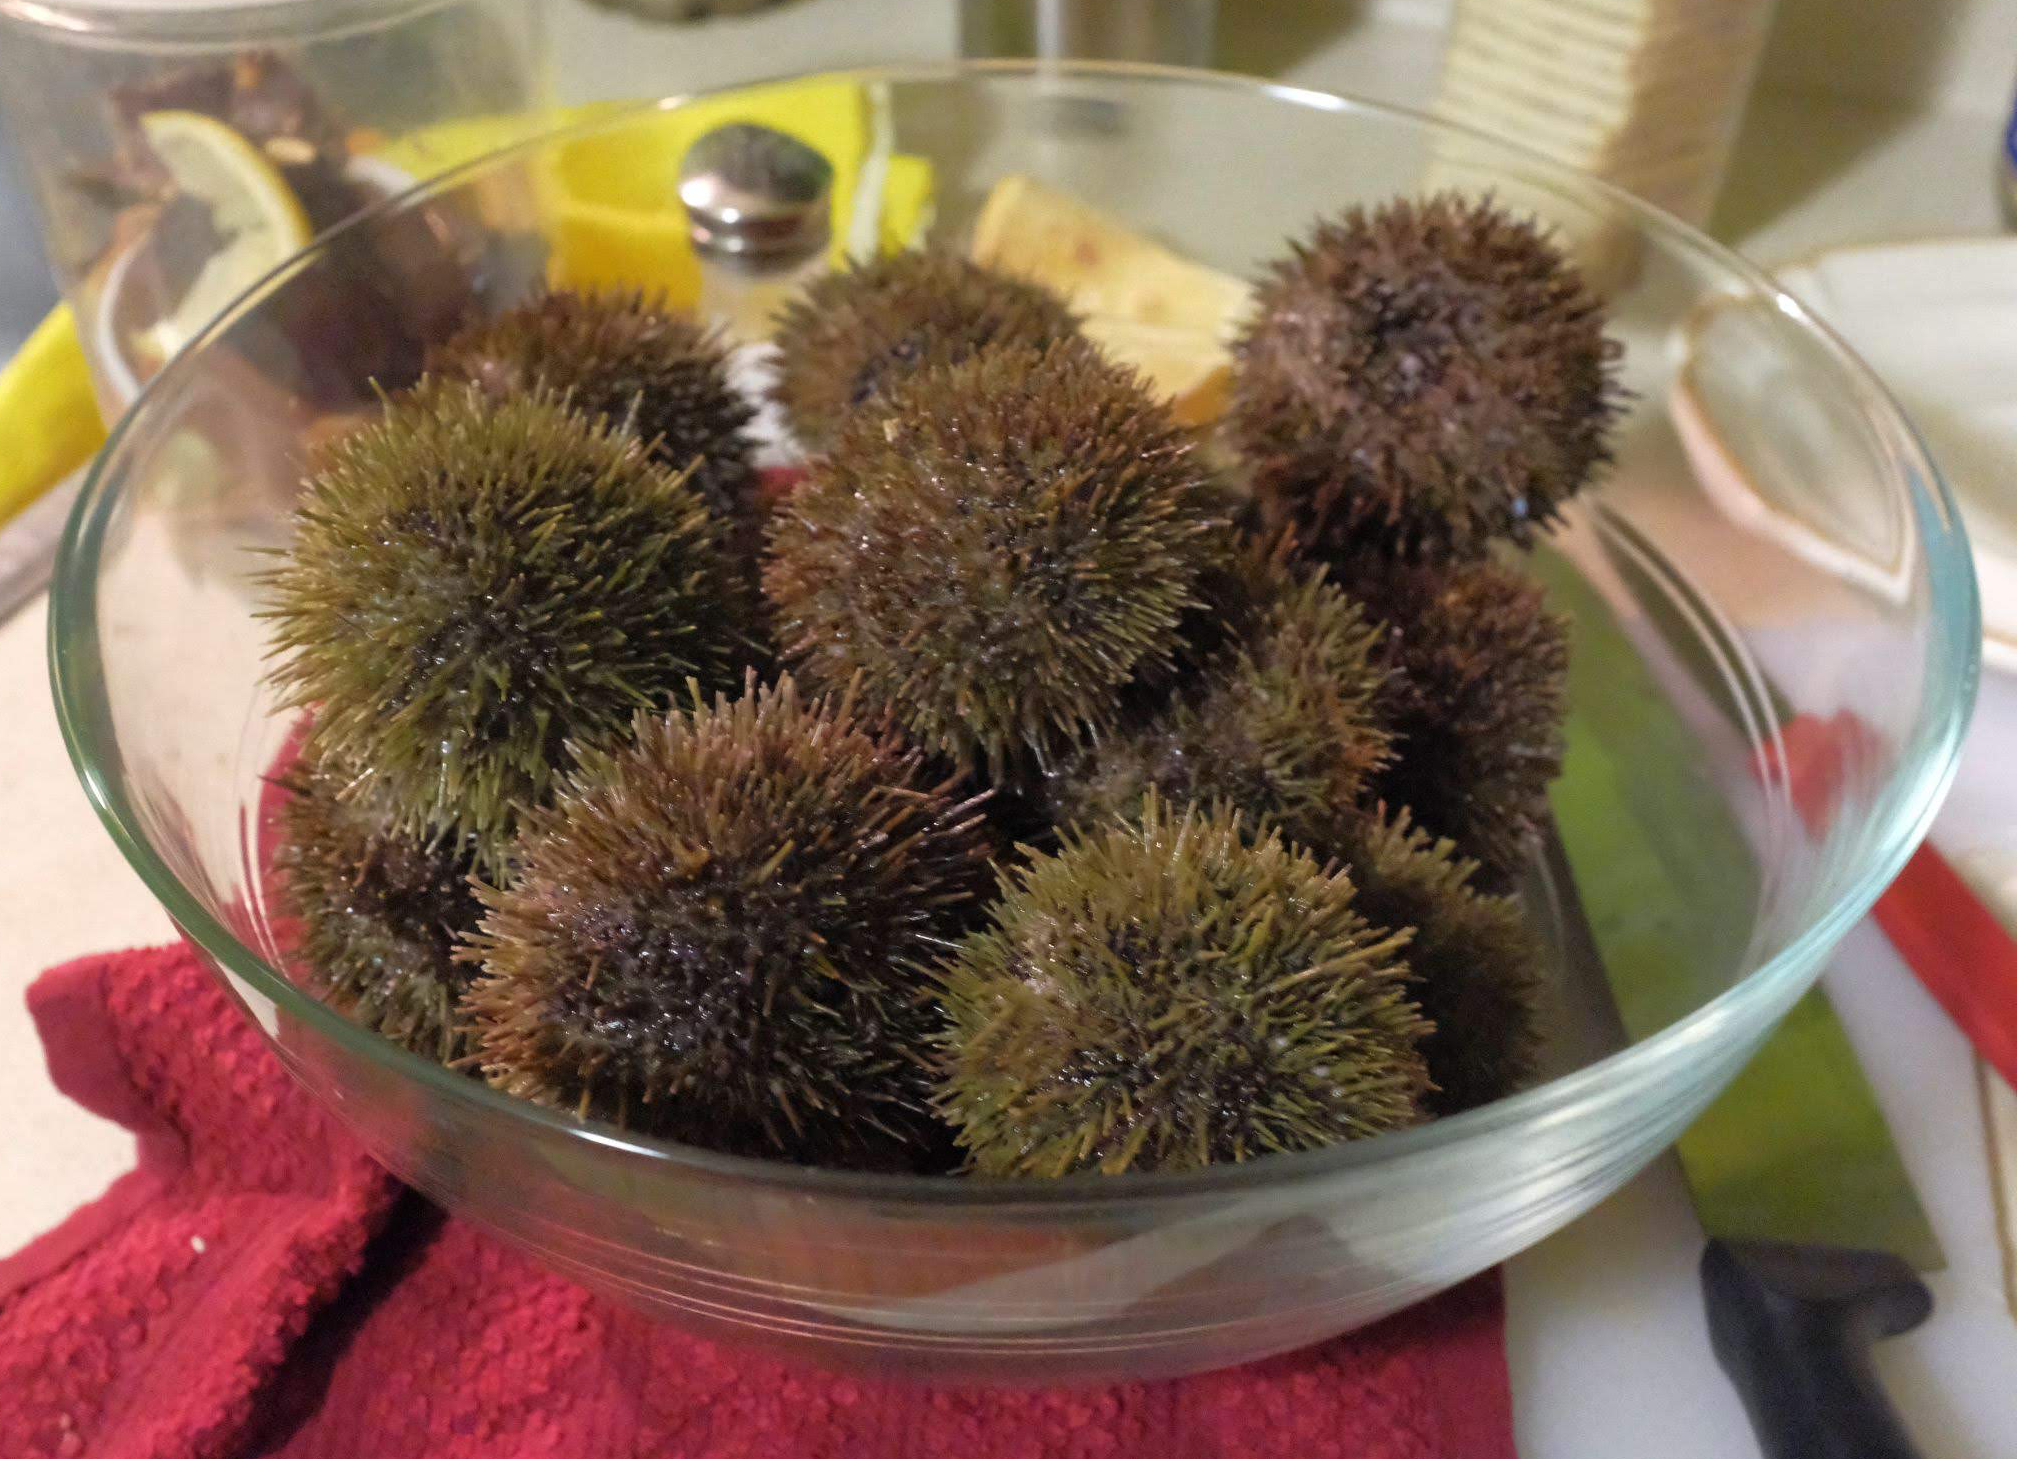 A pile of sea urchins in a glass bowl